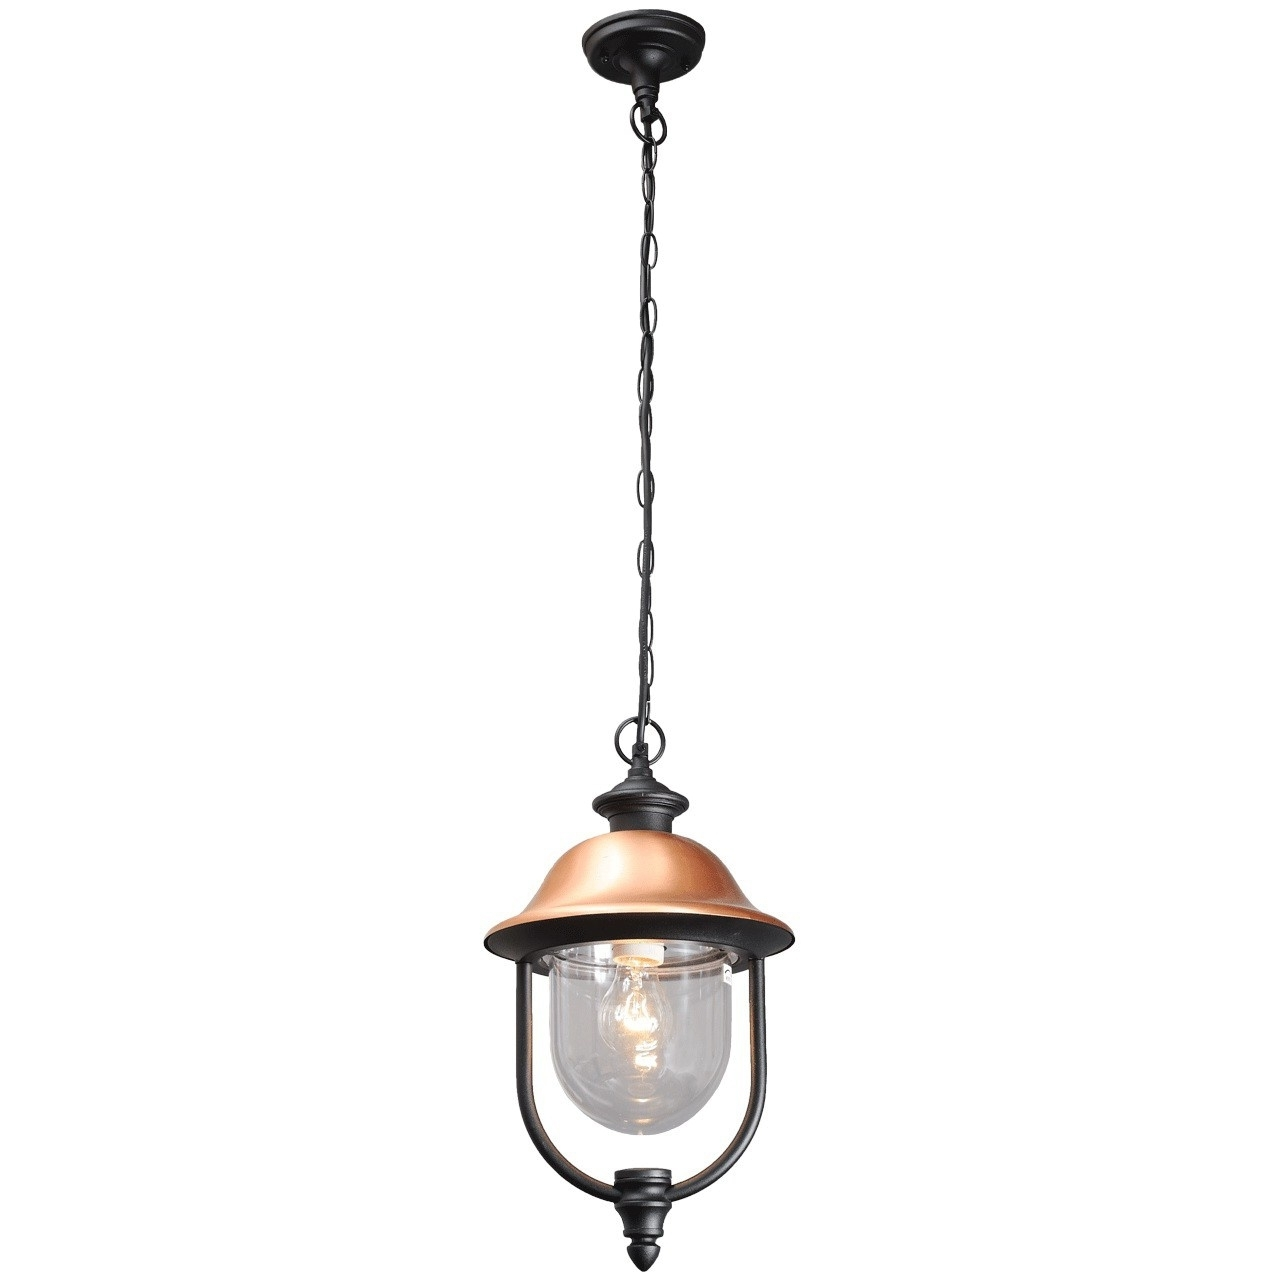 Lighting : Rustic Outdoor Pendant Lighting Kichler 2713Ob One Light Pertaining To Most Recently Released Rustic Outdoor Hanging Lights (View 8 of 20)